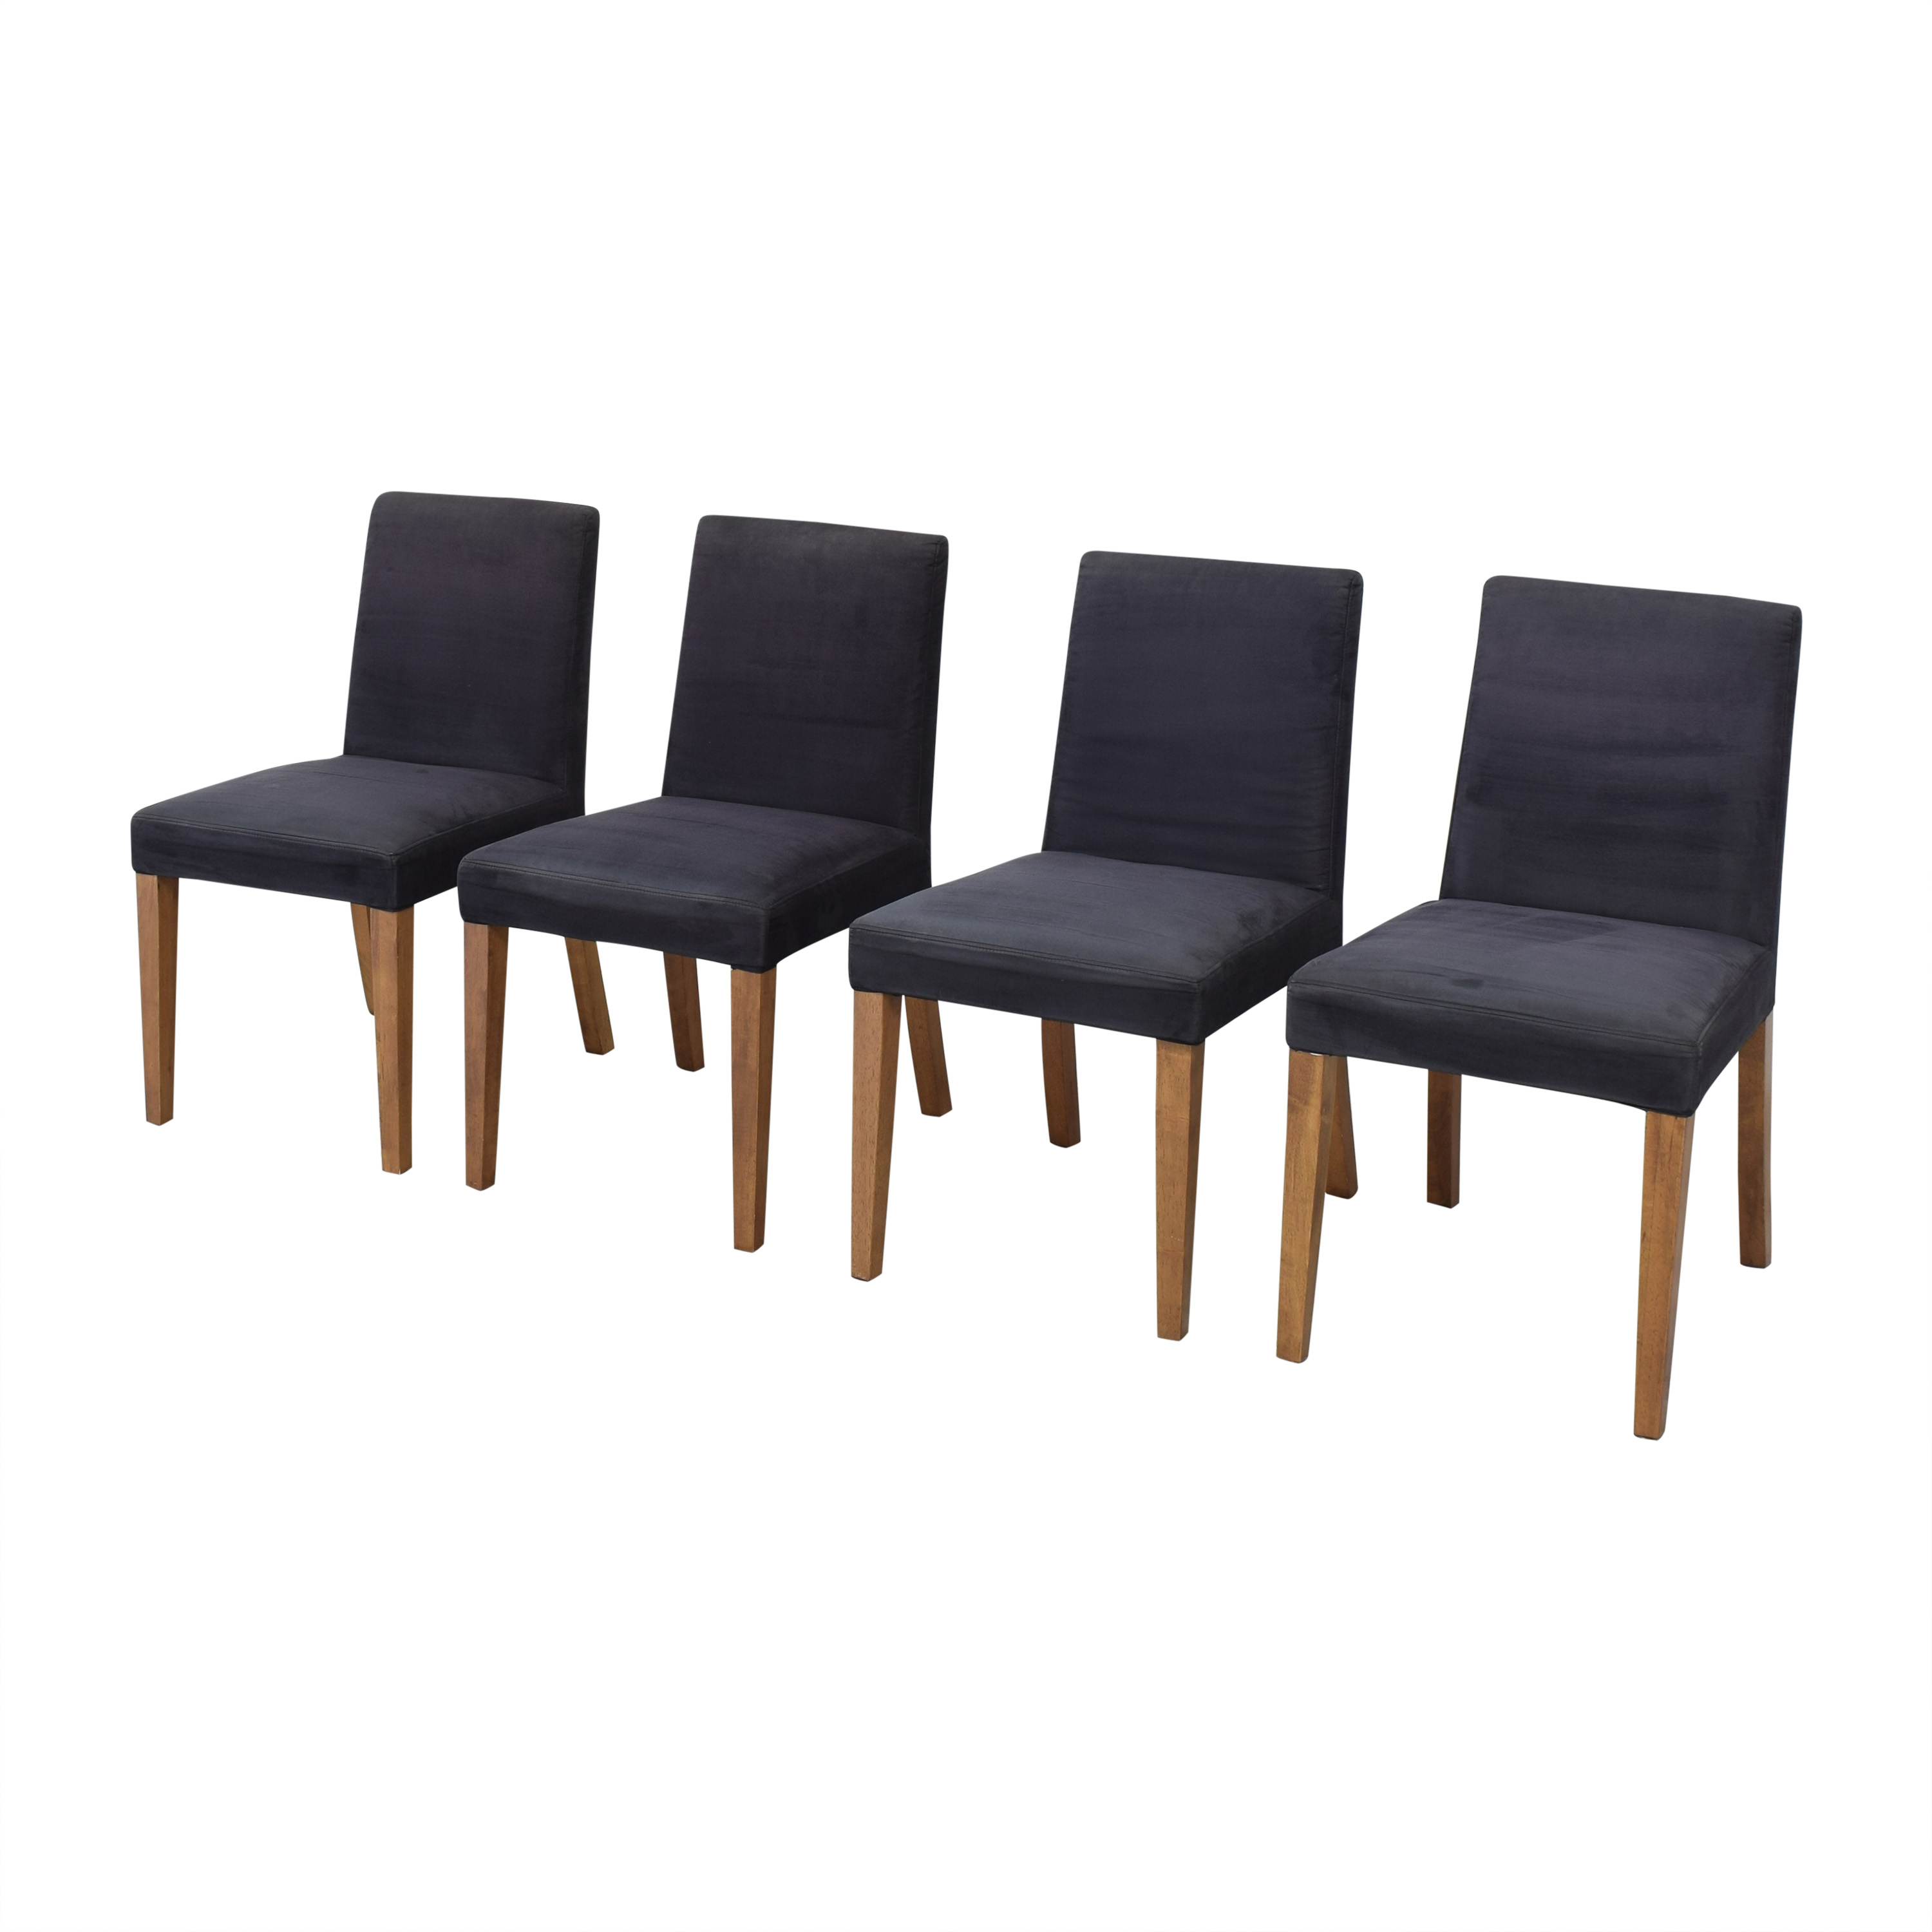 shop BoConcept Cantono Upholstered Chairs BoConcept Dining Chairs